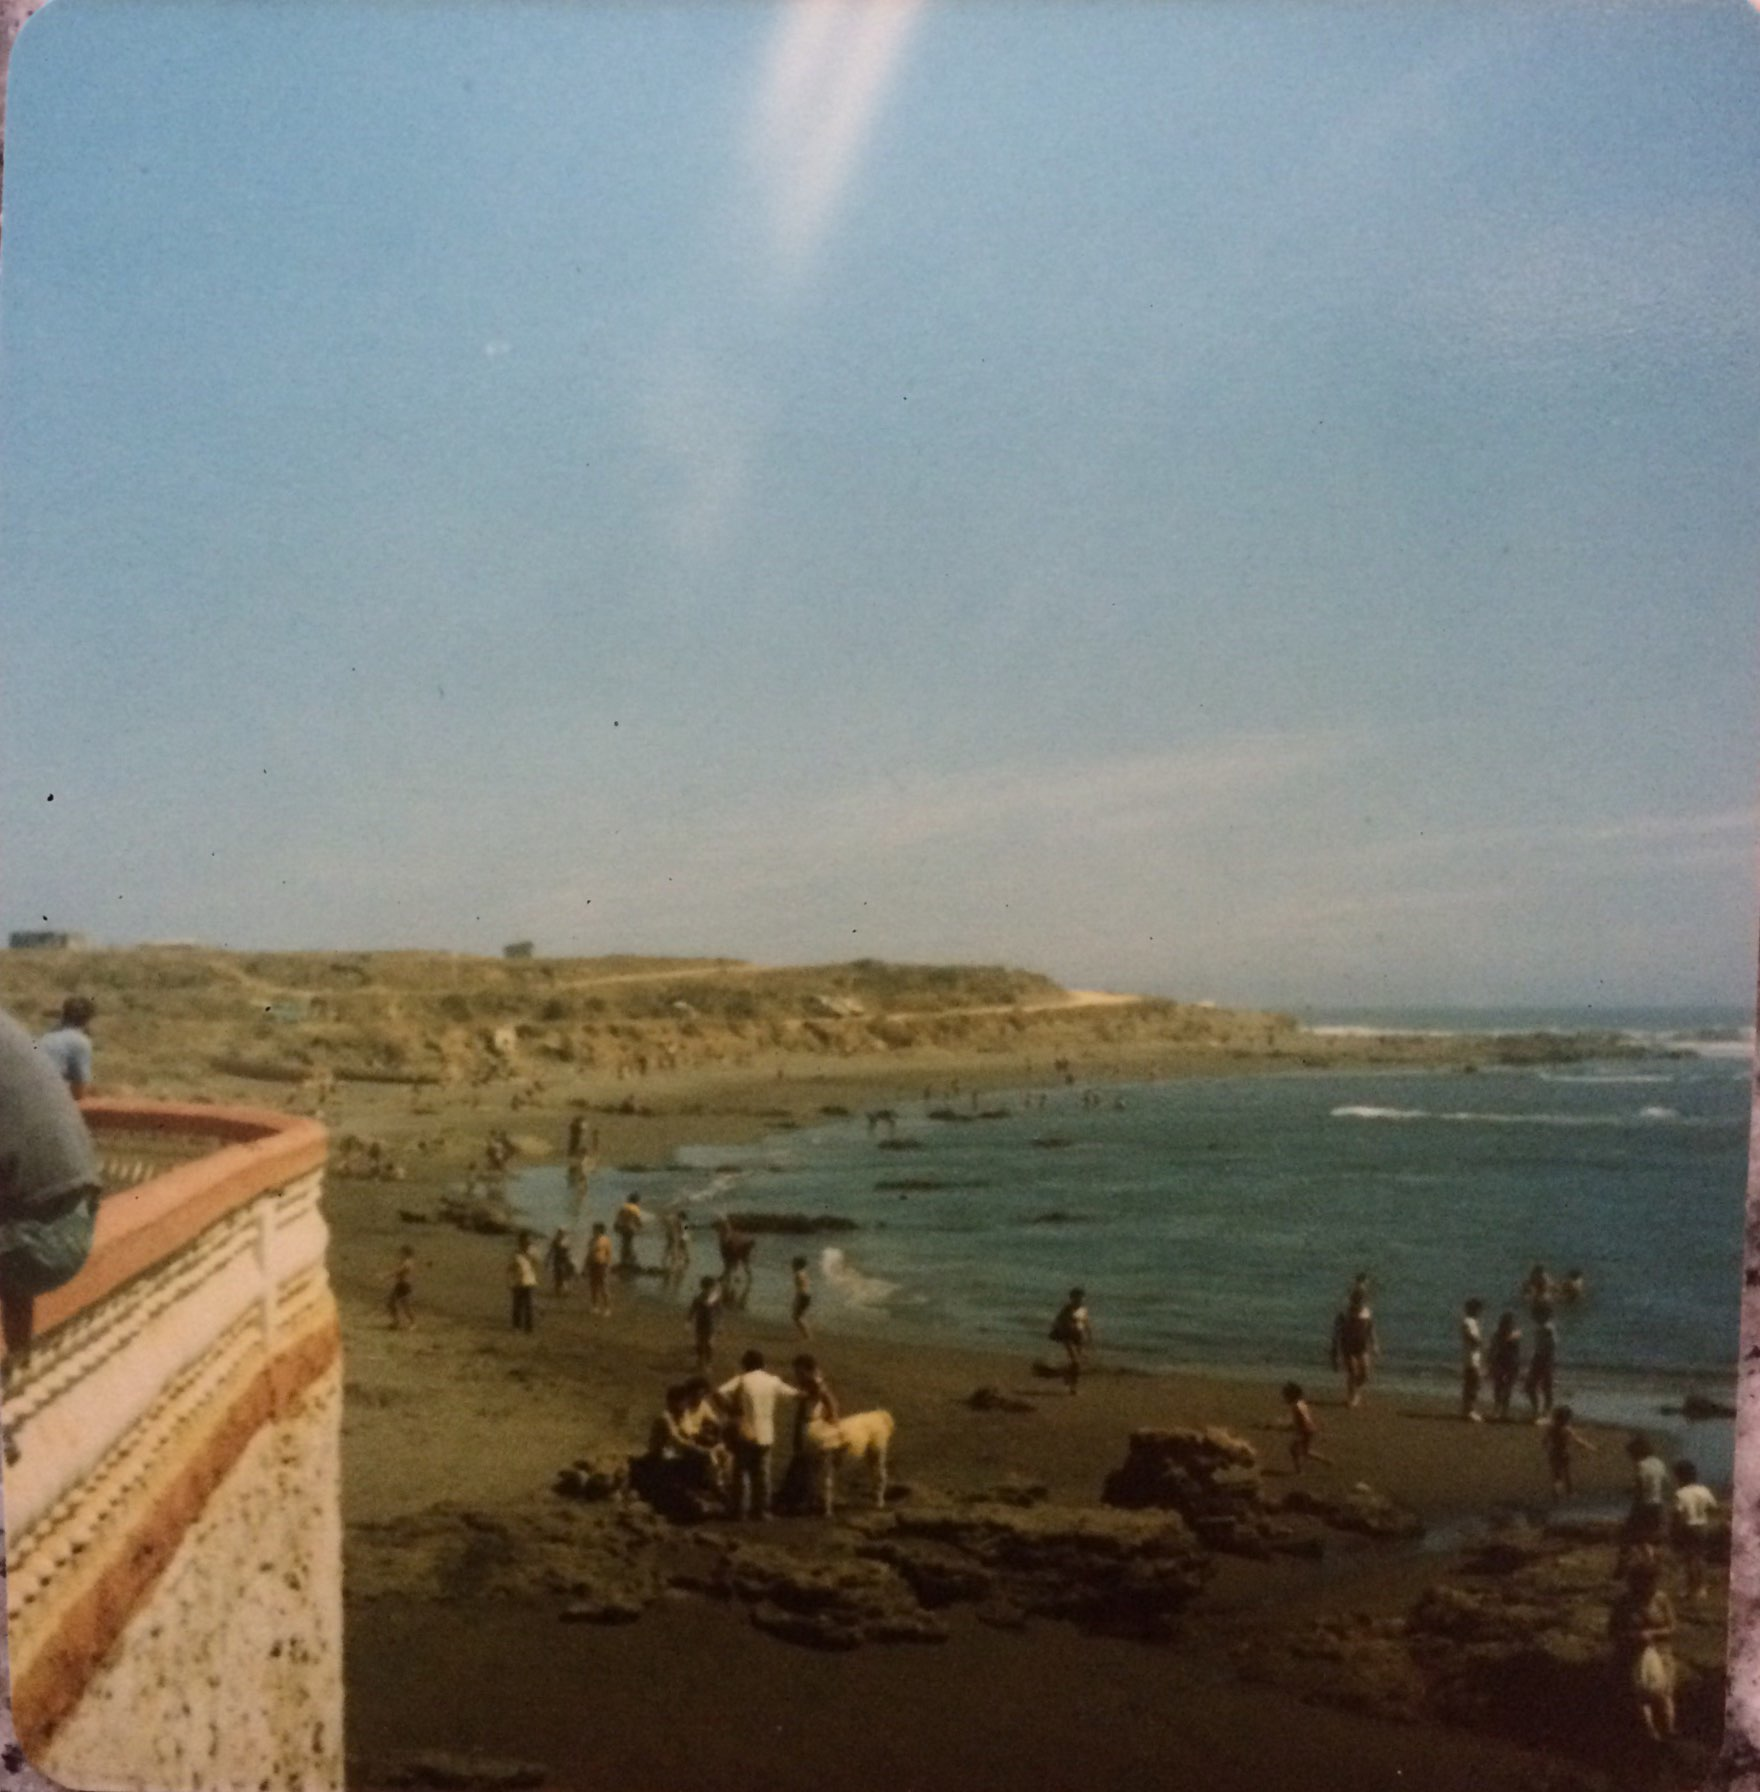 Enterreno - Fotos históricas de chile - fotos antiguas de Chile - Pichilemu e 1983